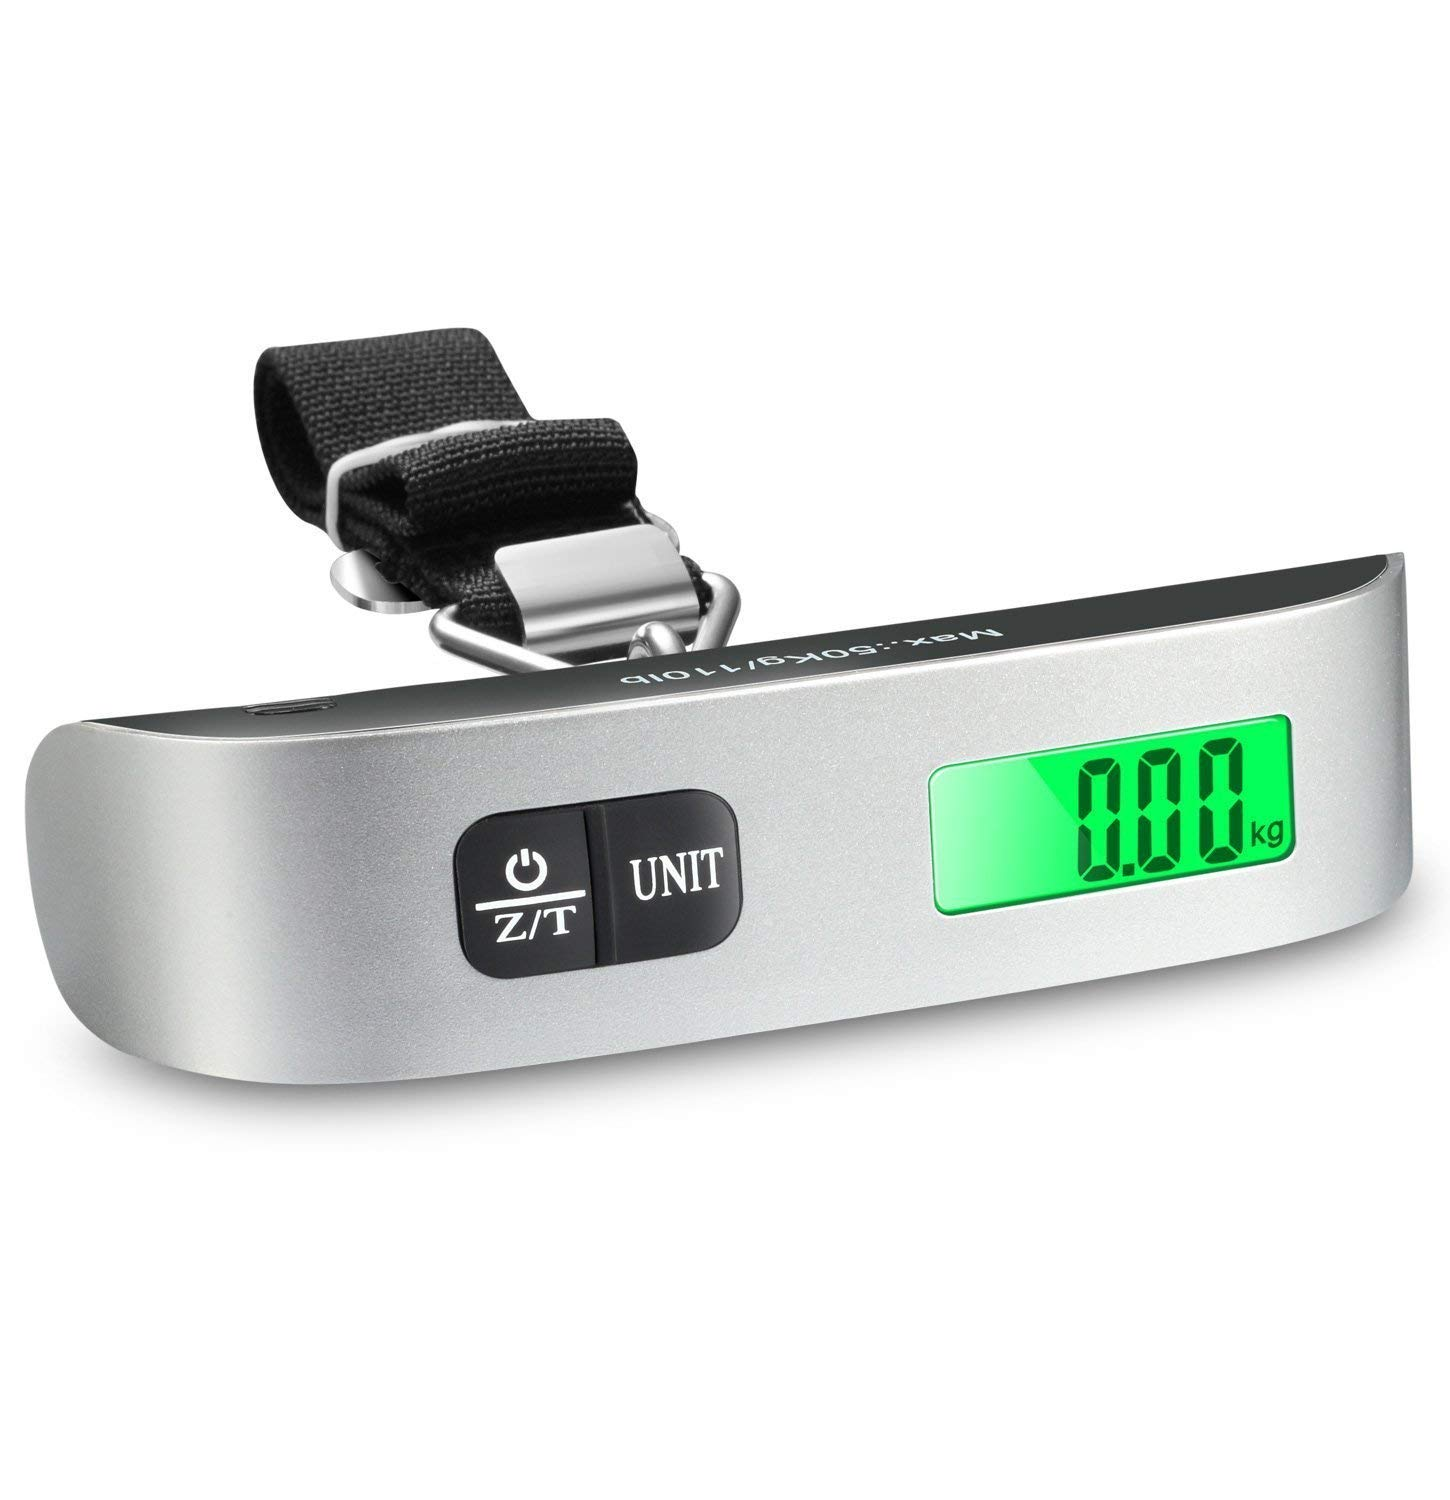 87fad2e265cc Adtala Mini Digital Luggage Scale Hand Held LCD Electronic Scale Electronic  Hanging Scale Thermometer 50kg/110lb Capacity Weighing Device